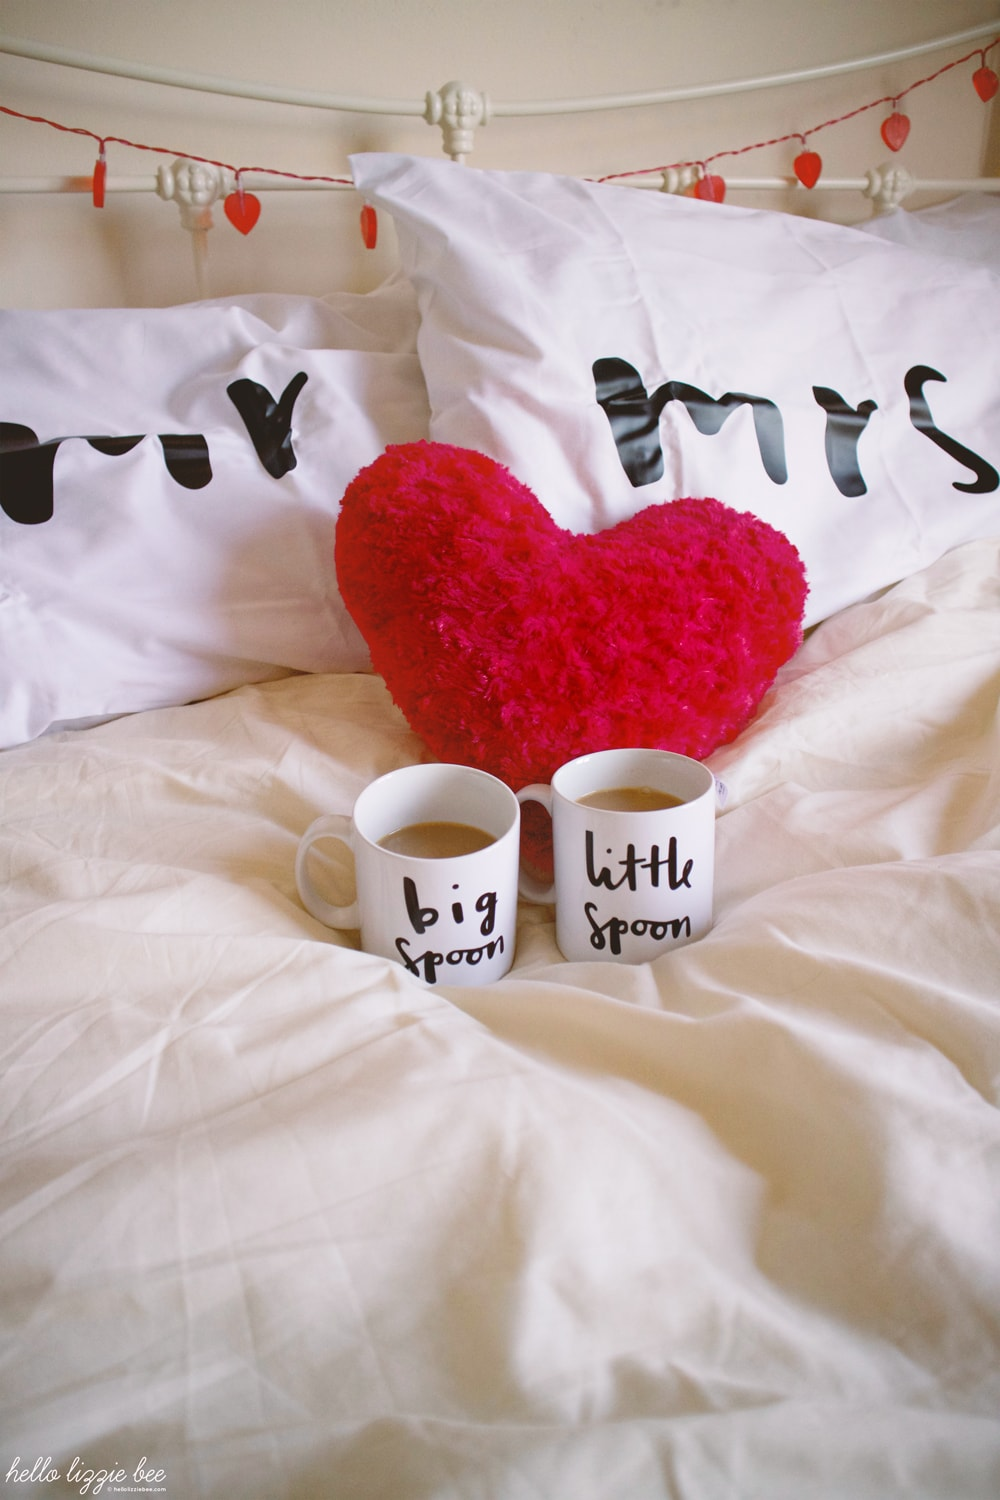 mr and mrs pillow, big spoon little spoon mugs